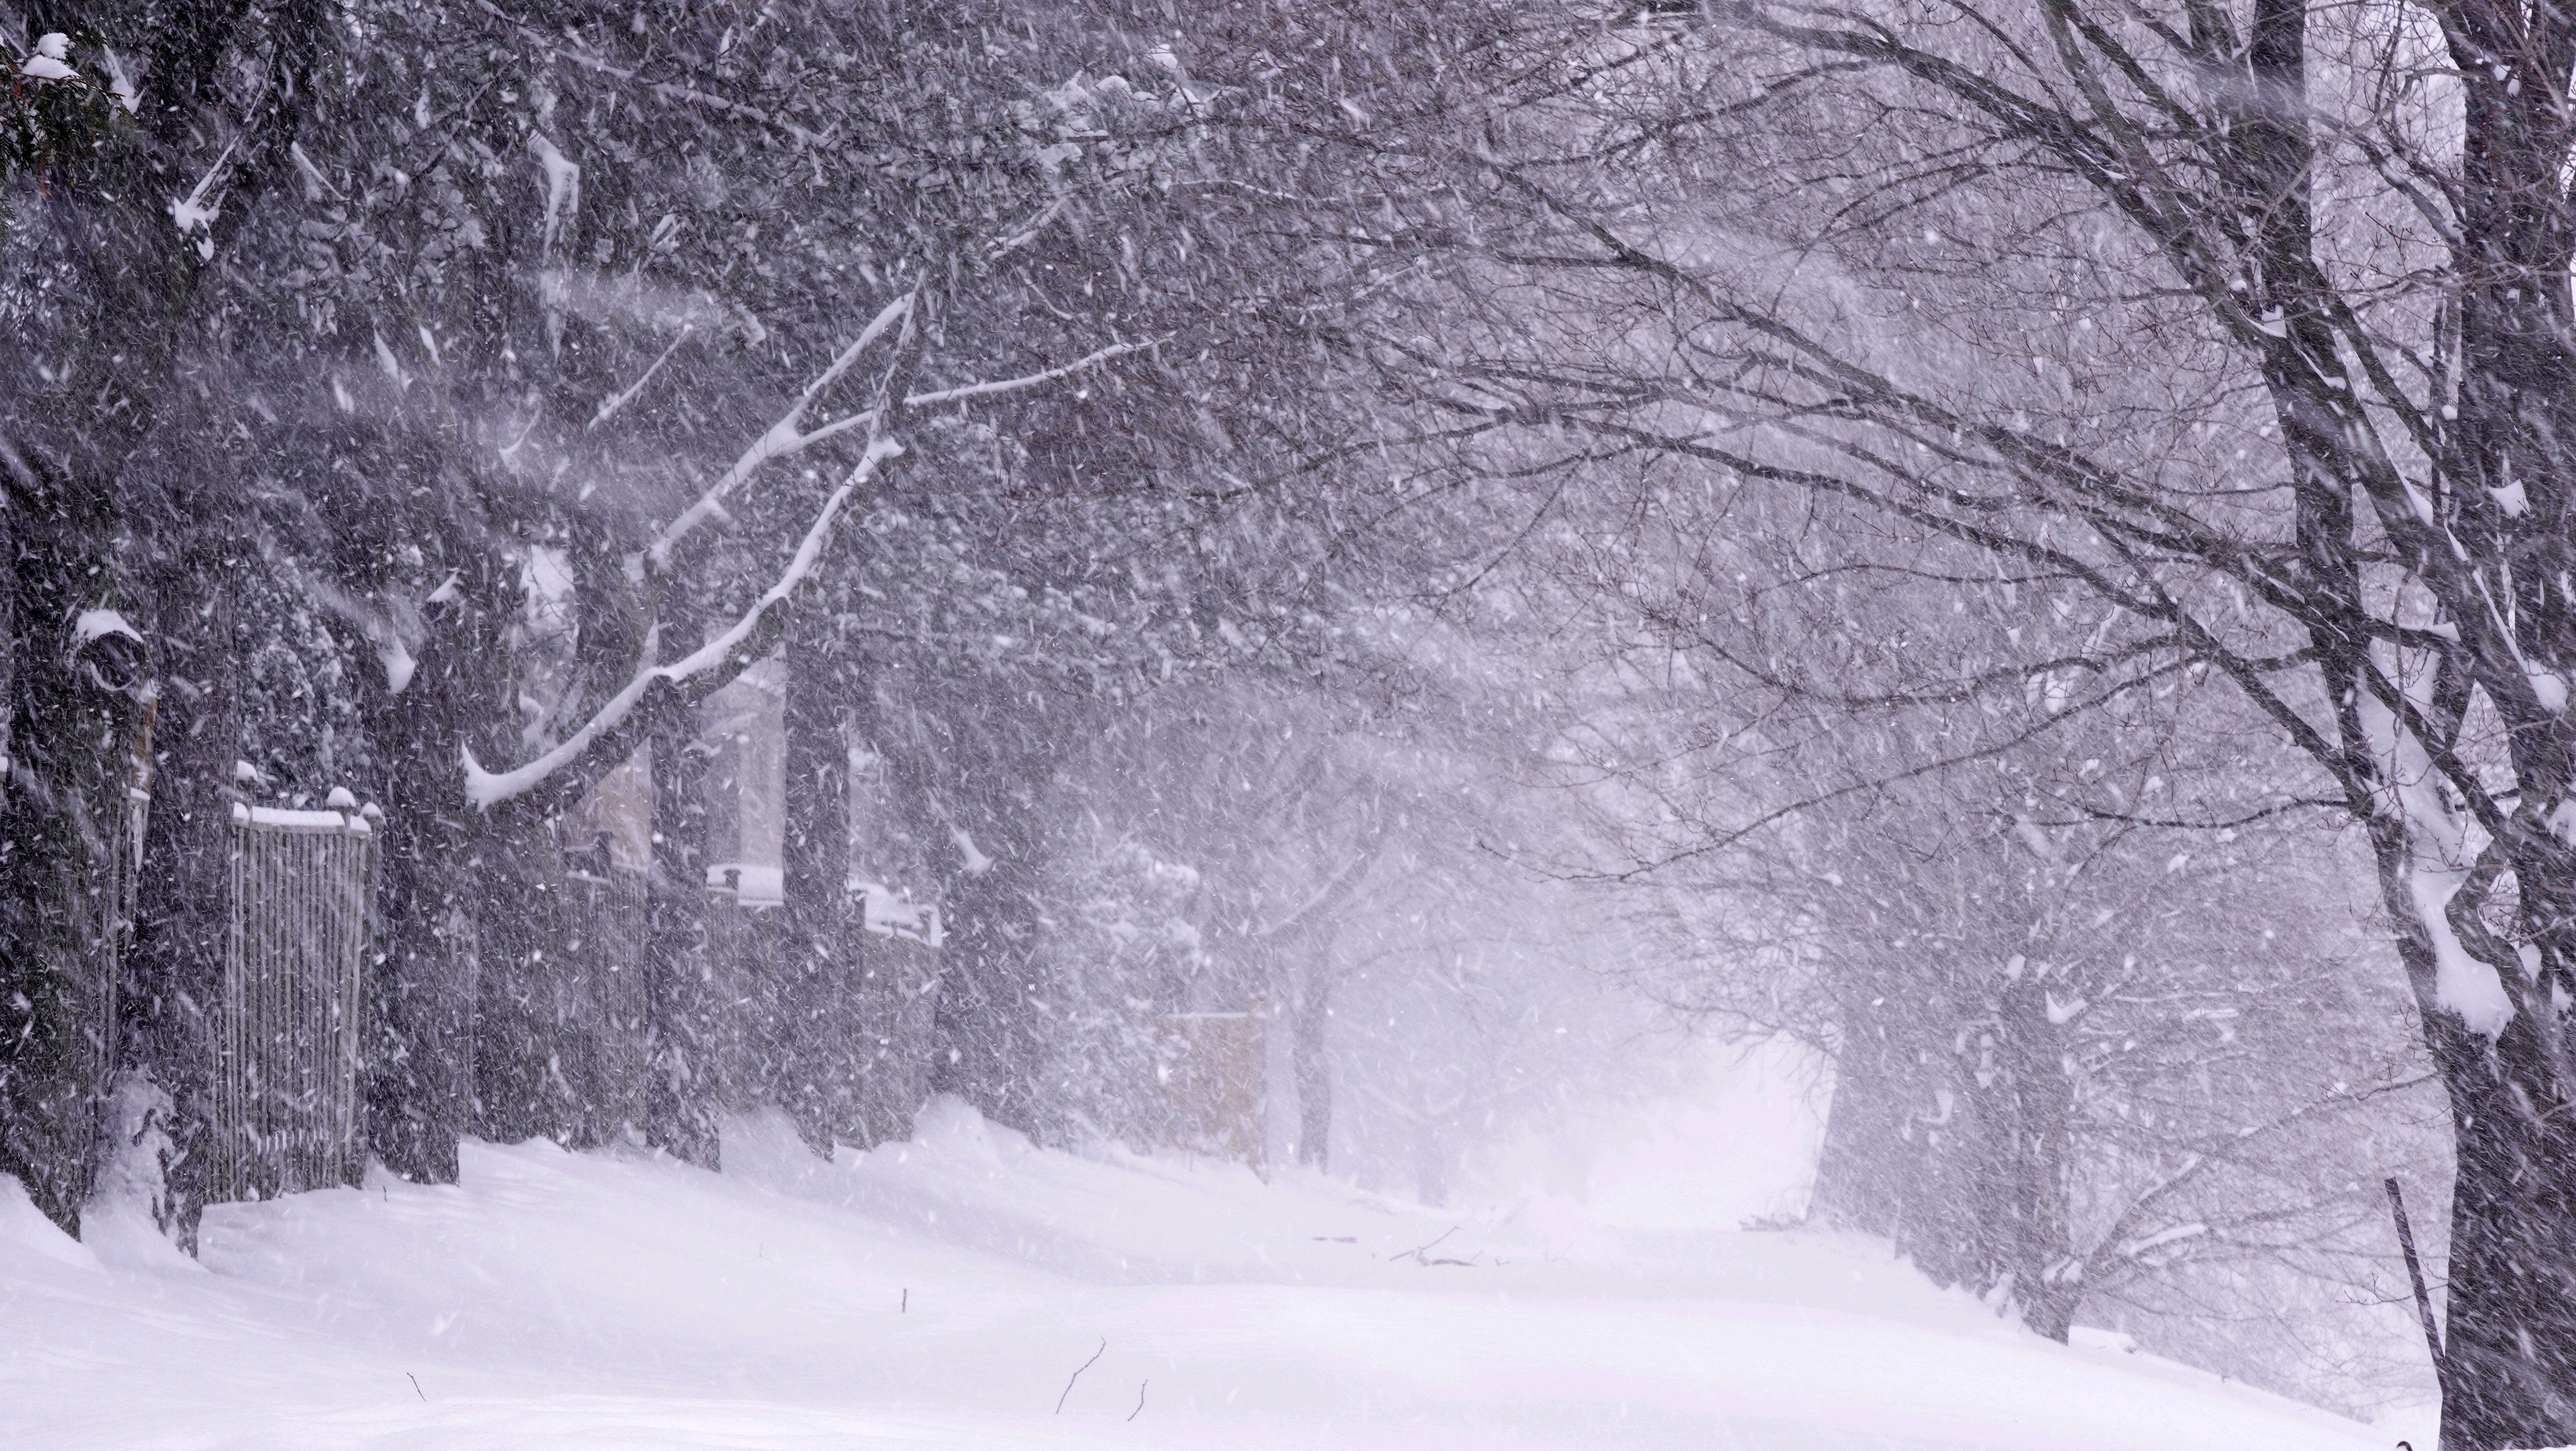 Blizzard in the woods image - Free stock photo - Public ...